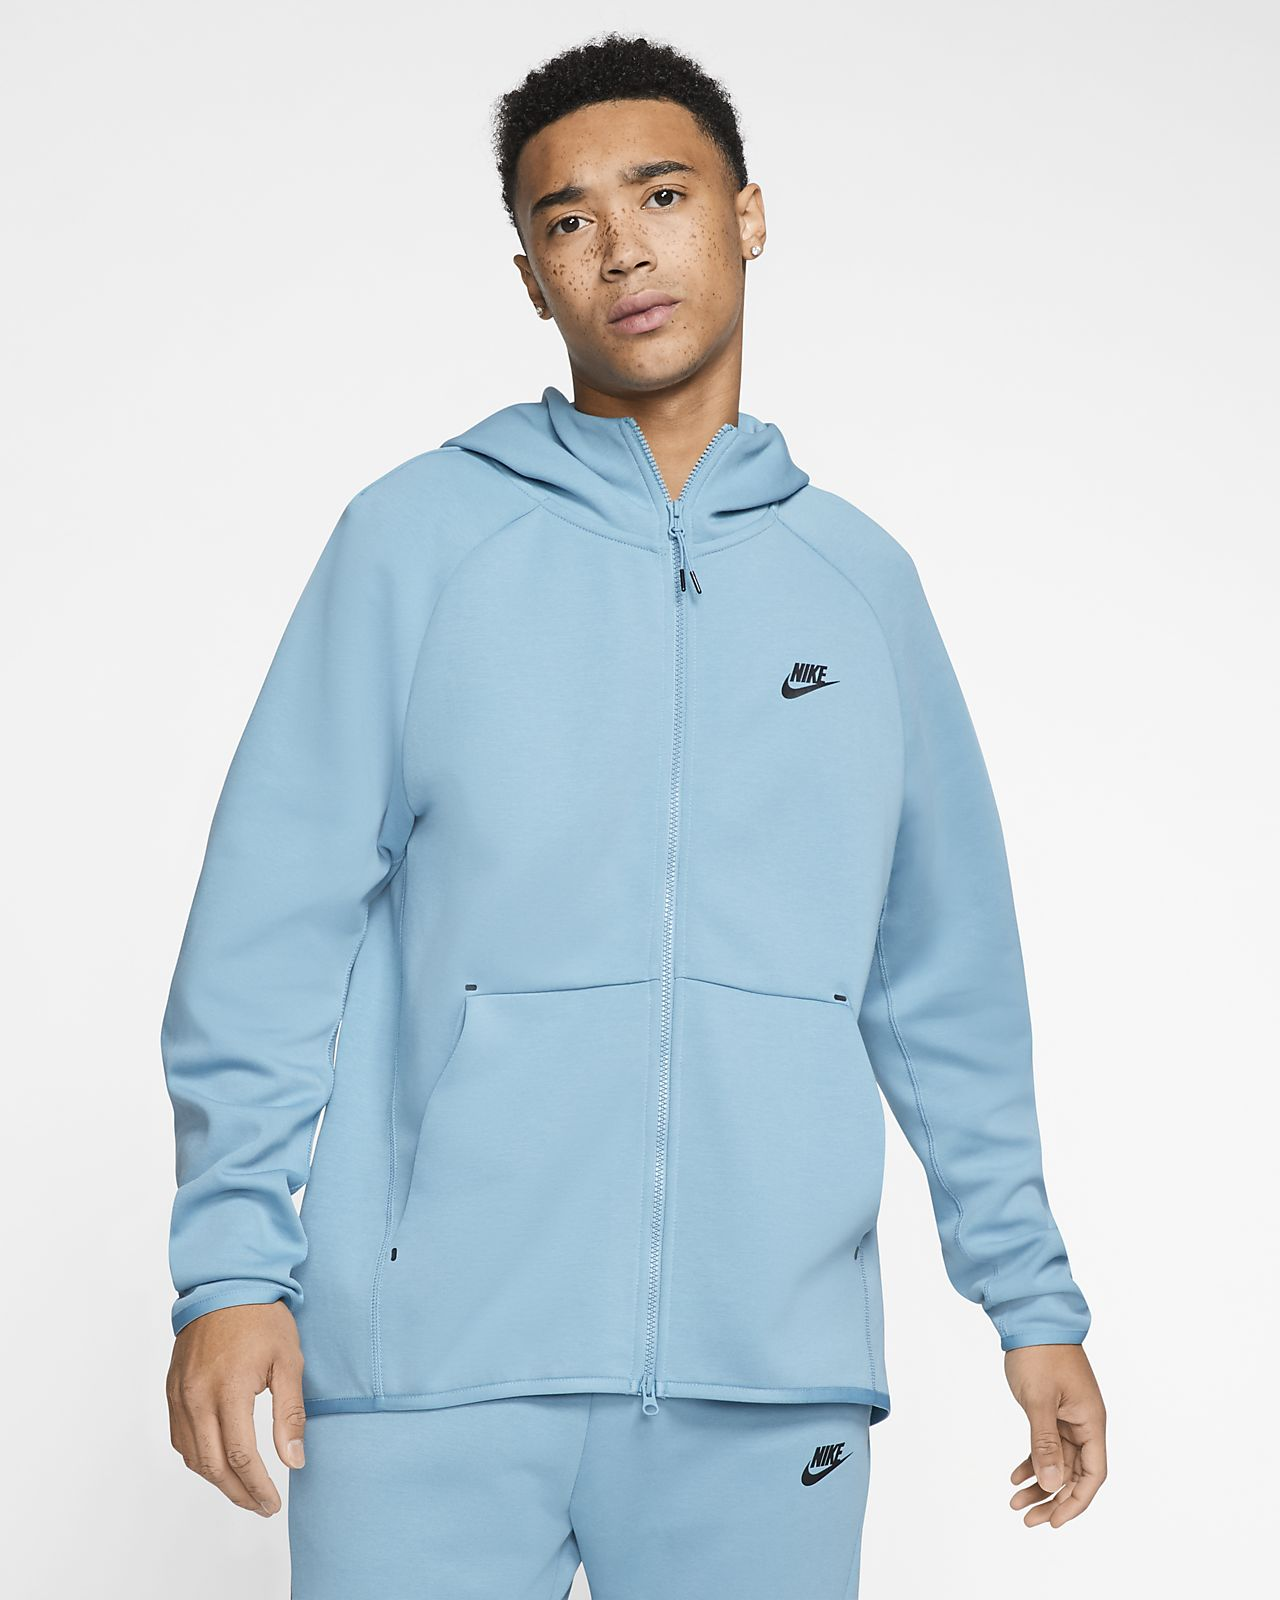 nike fleece for men